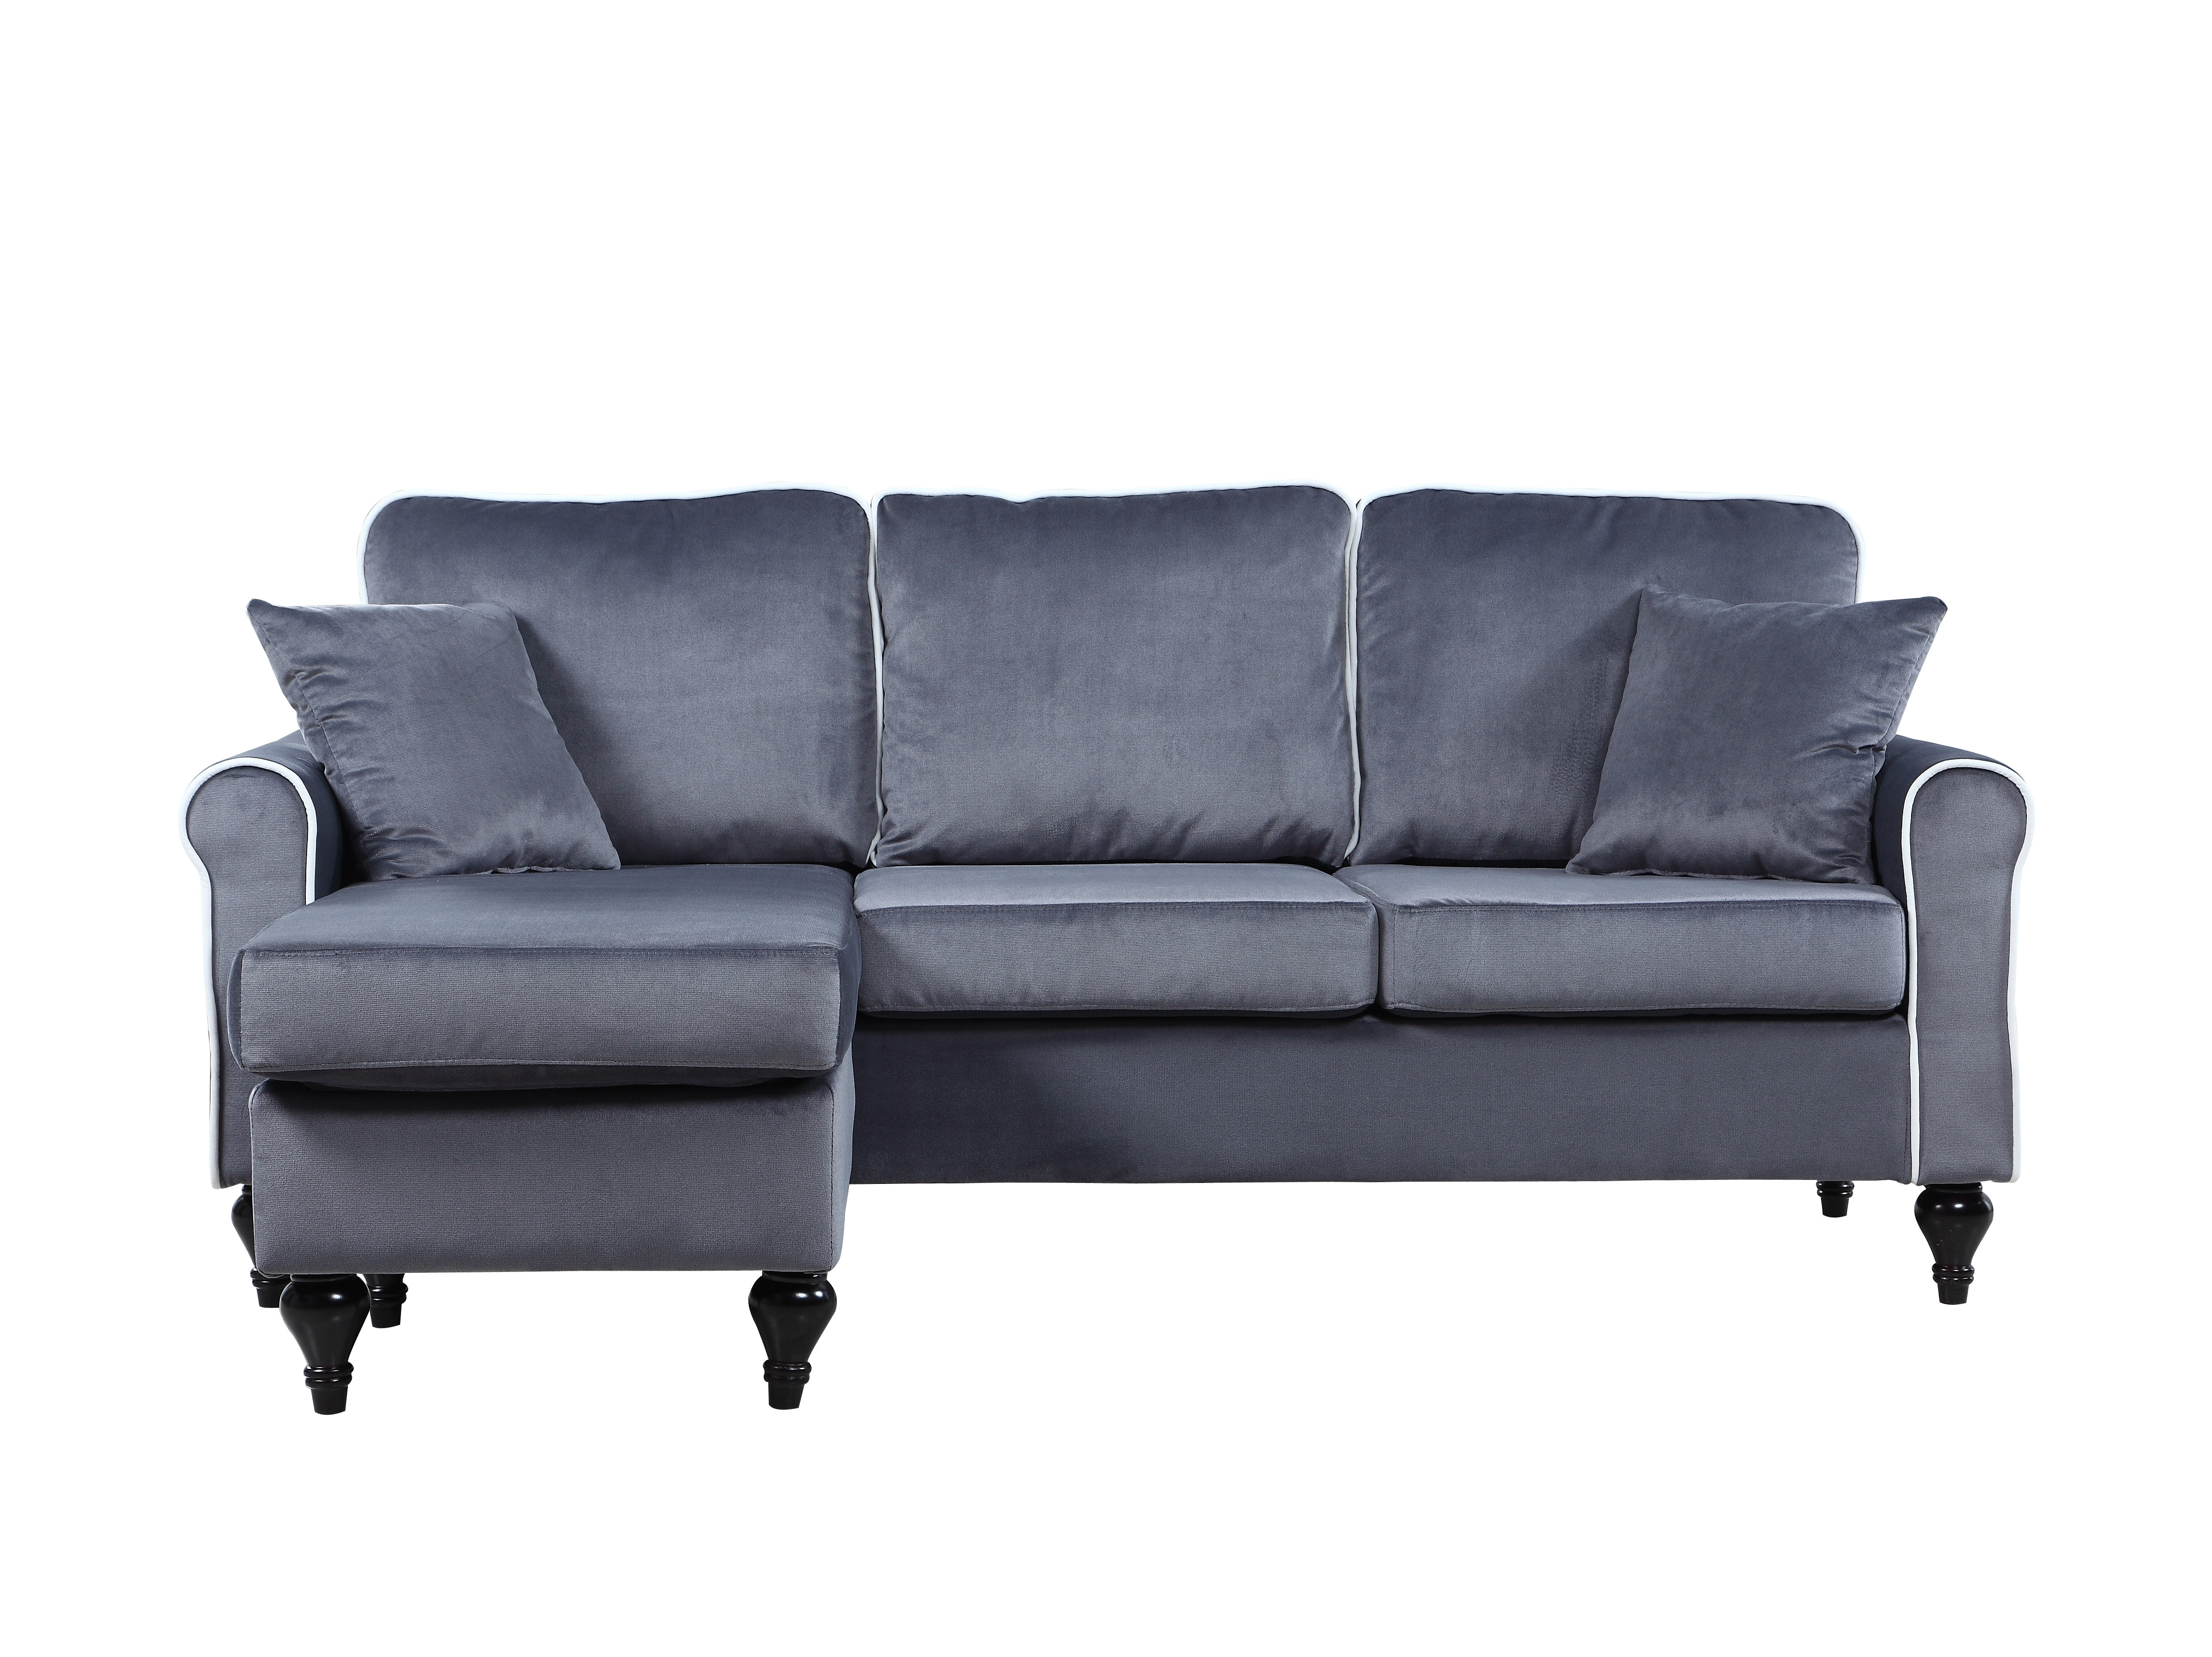 Best ideas about Grey Sectional Sofa With Chaise . Save or Pin Traditional Small Space Grey Velvet Sectional Sofa with Now.